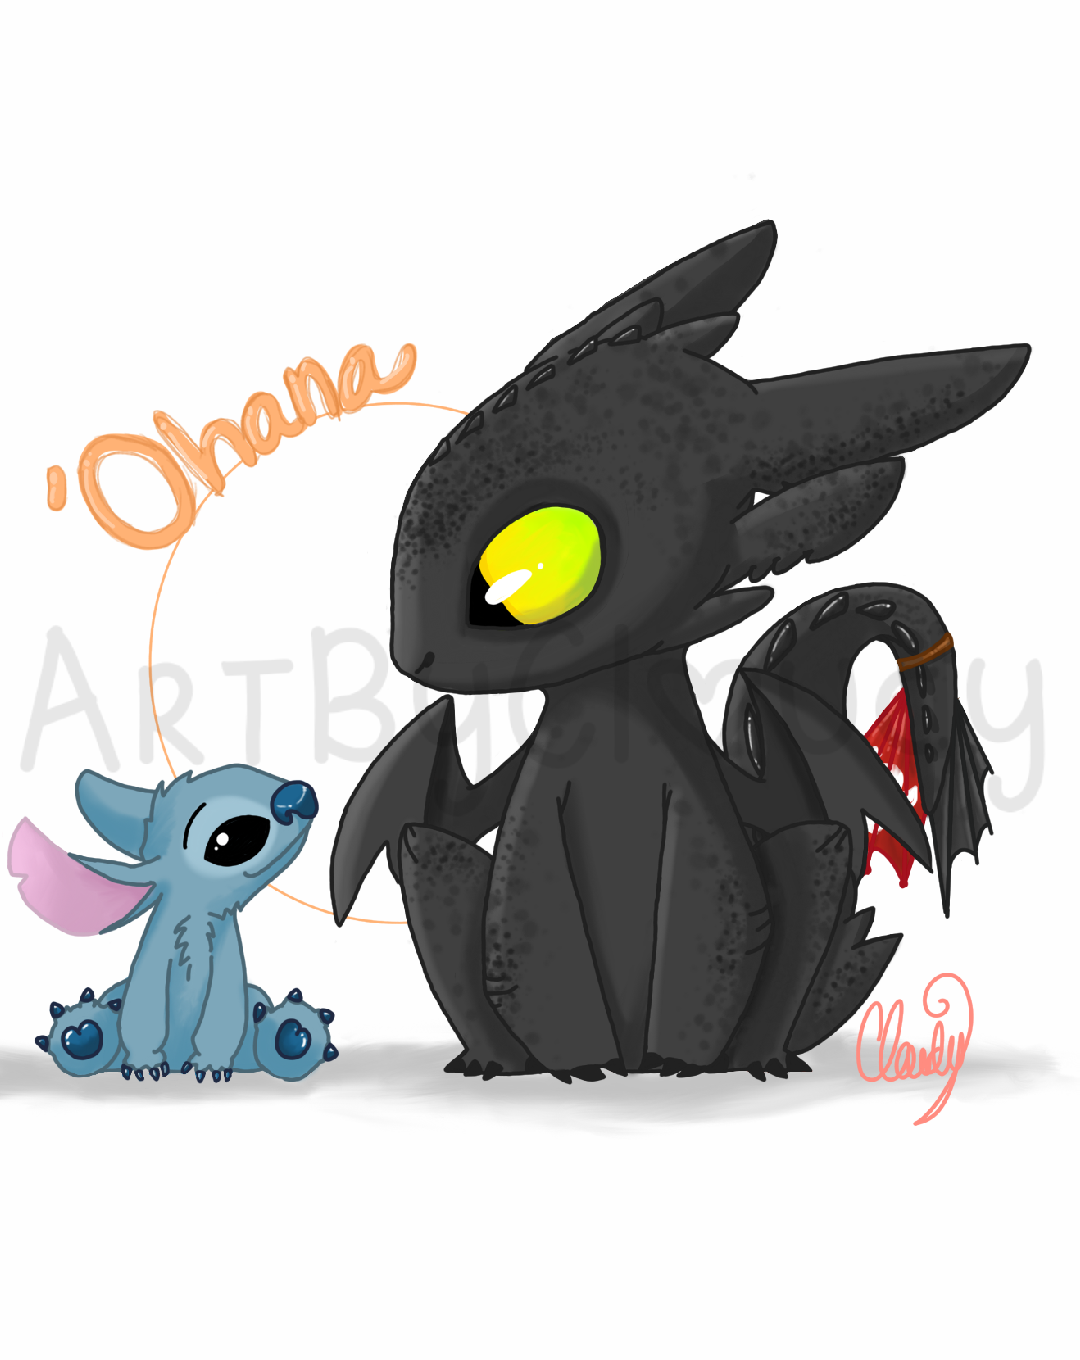 stitch and toothless by emochicklette04 on DeviantArt - photo#38